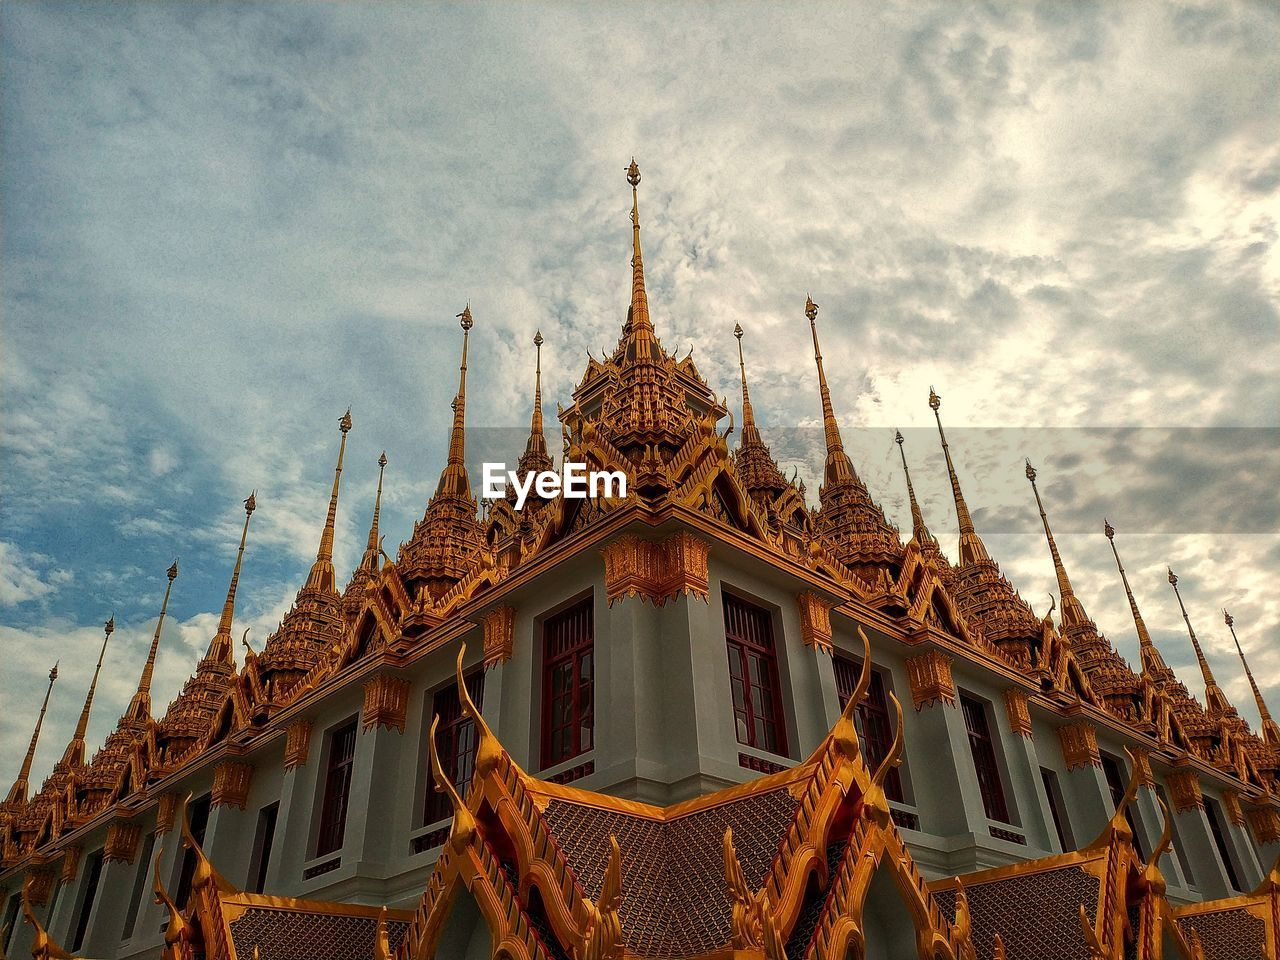 LOW ANGLE VIEW OF TEMPLE AGAINST BUILDING AND SKY